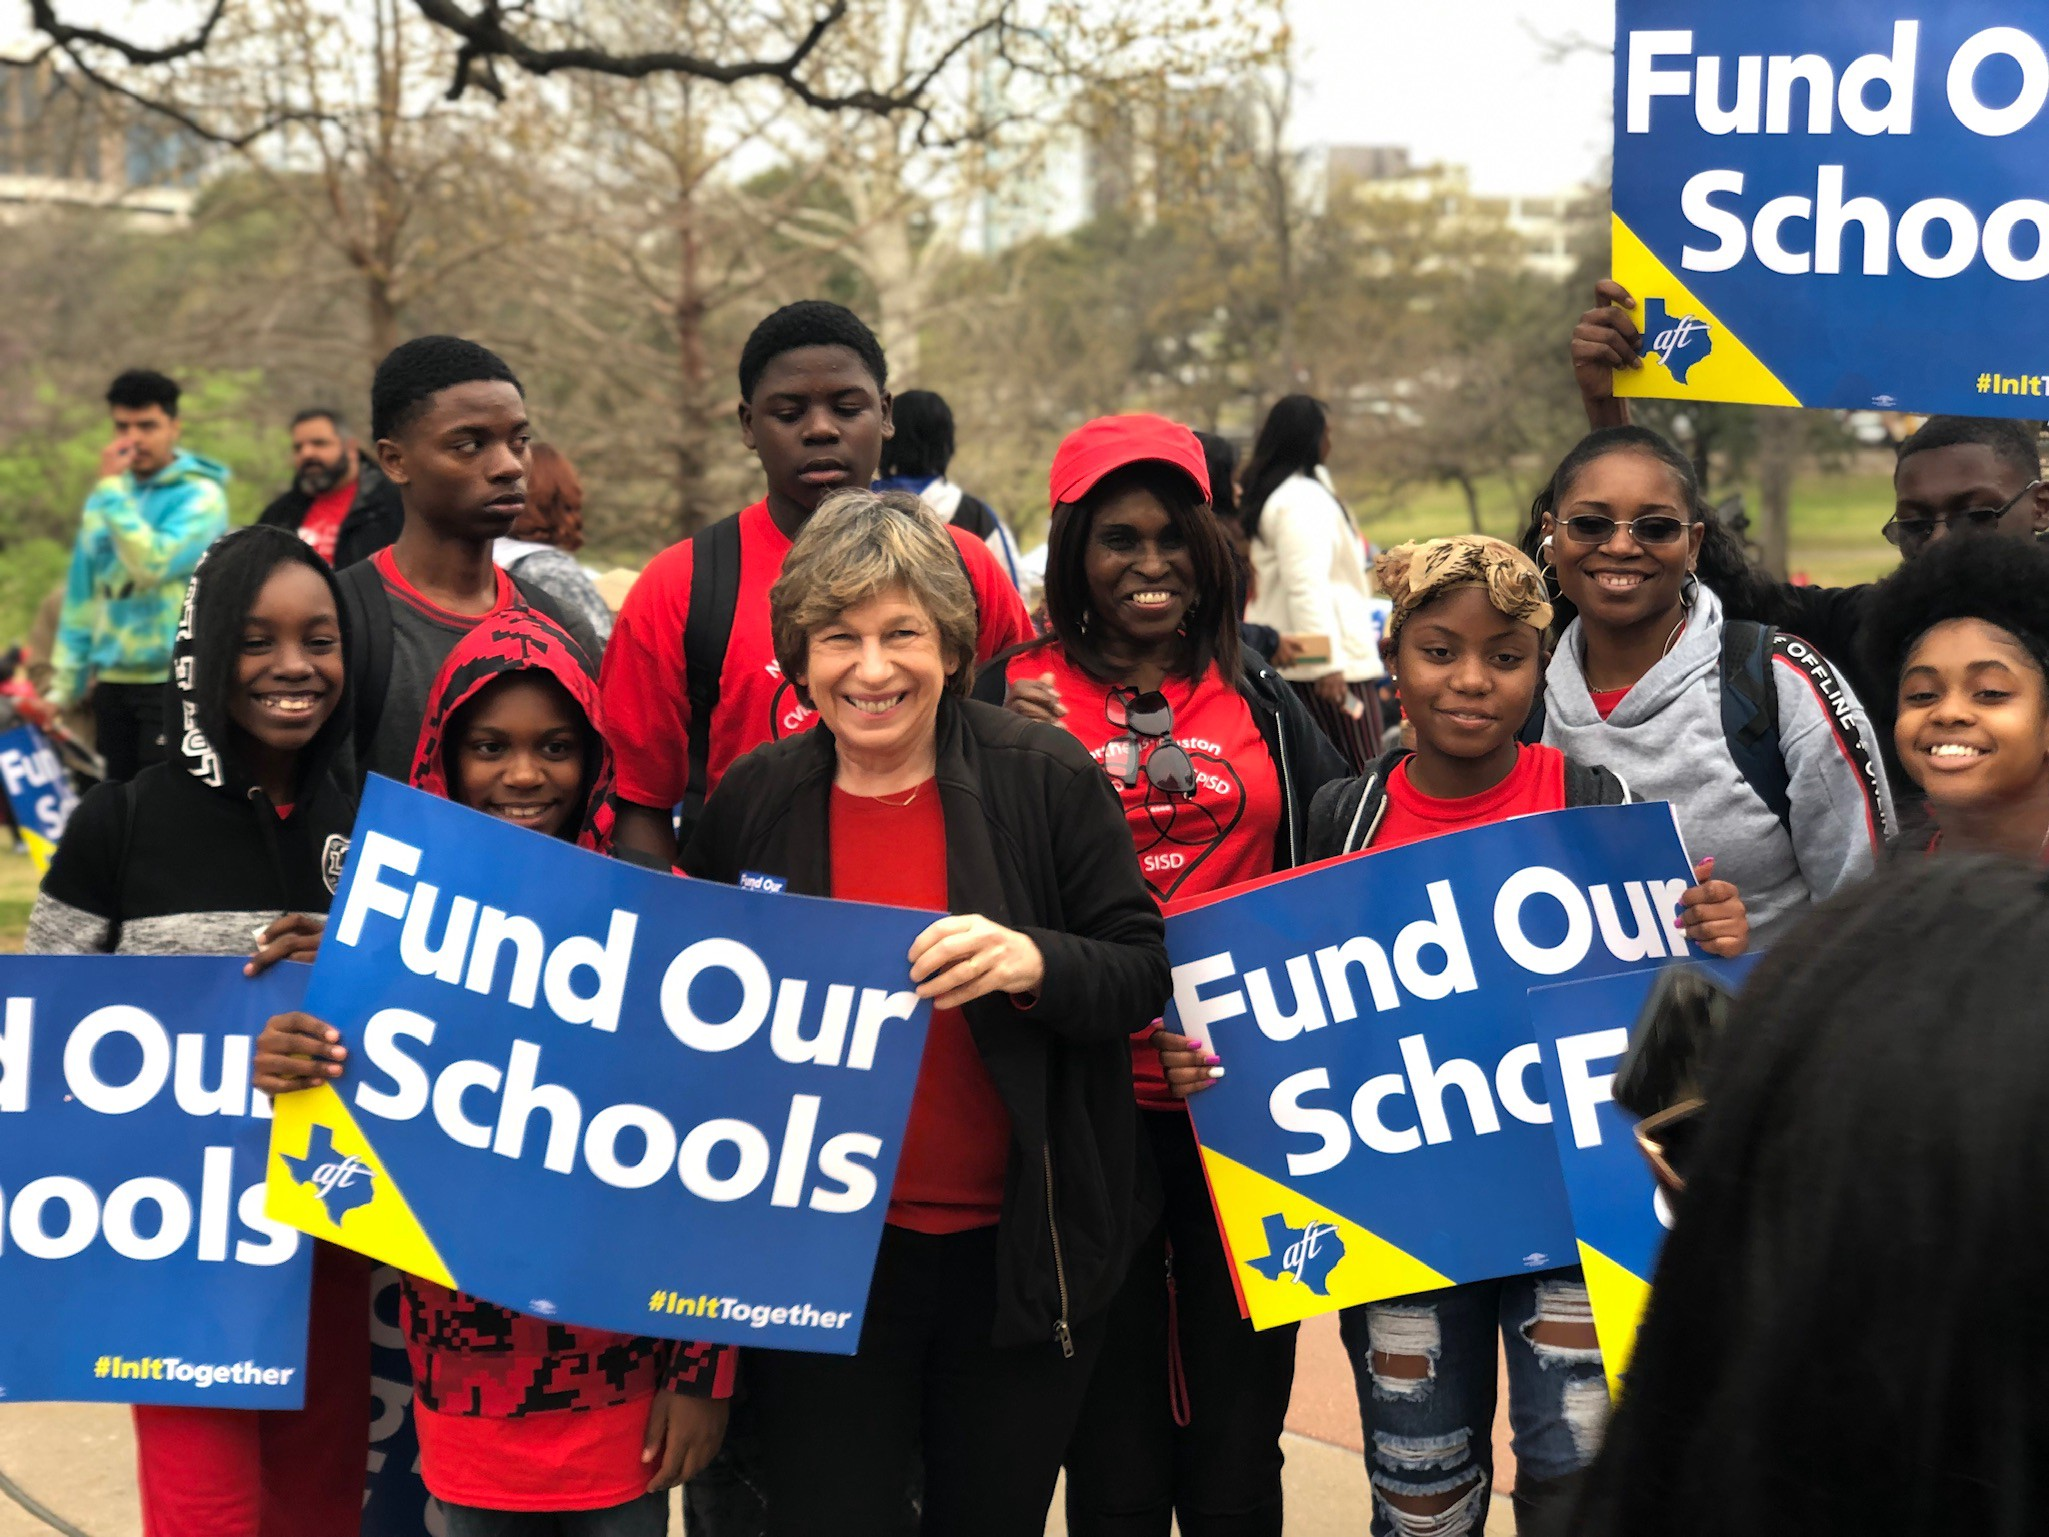 Investing in the schools our children deserve